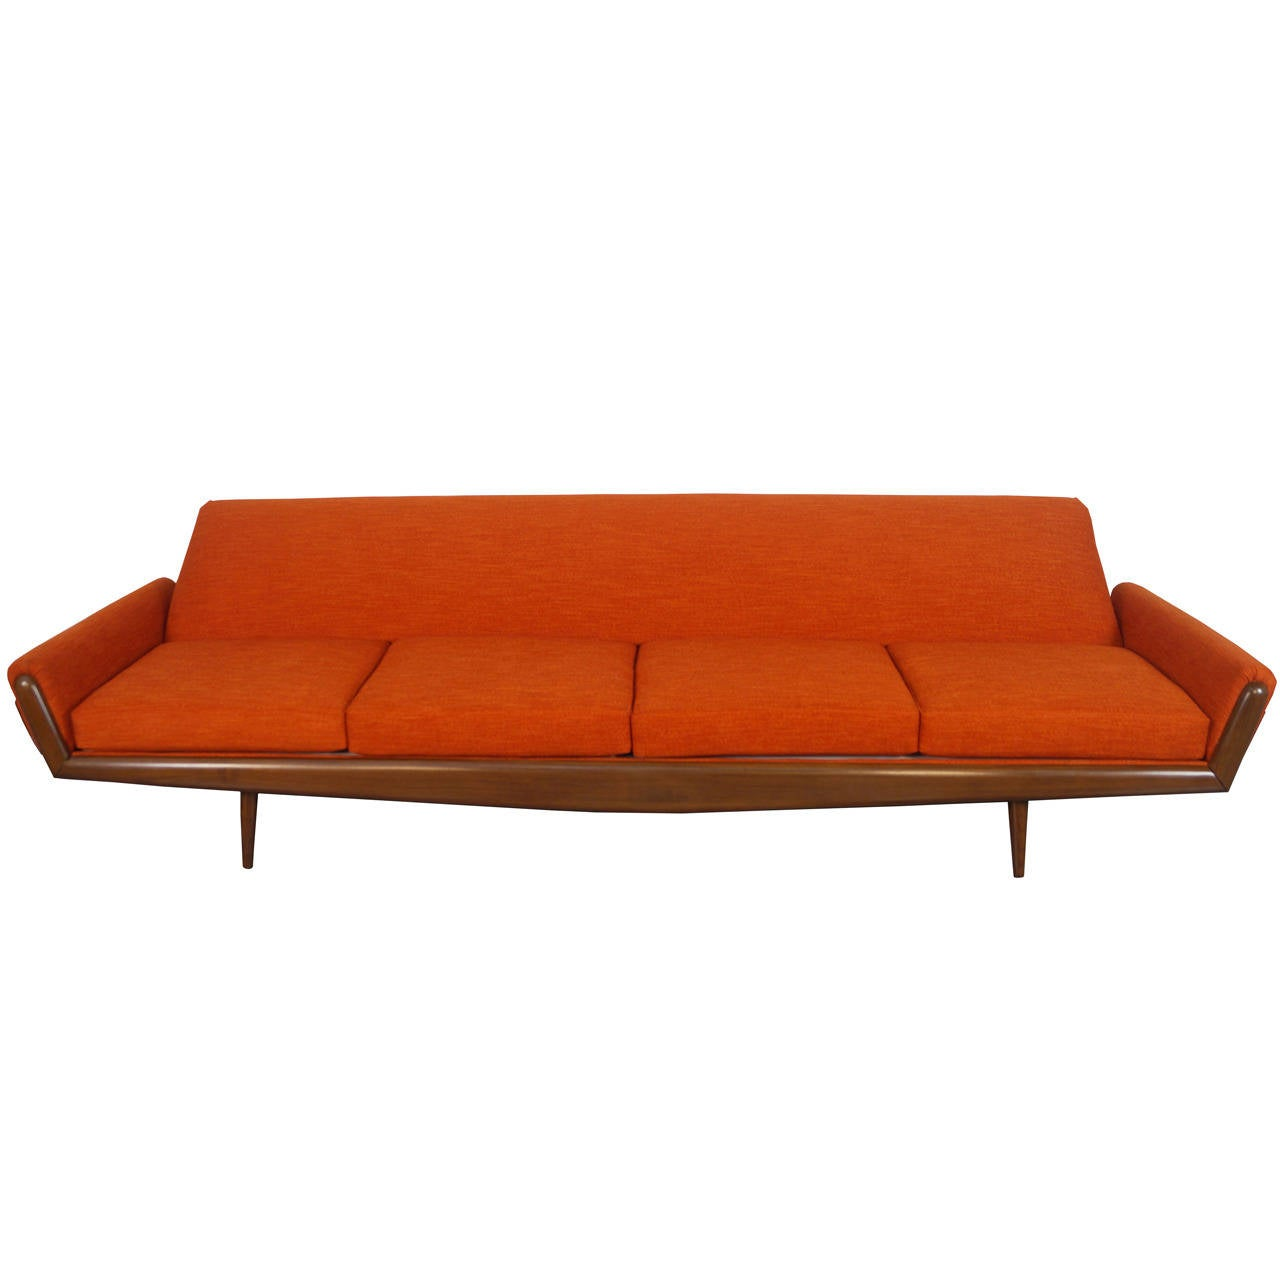 Vintage Sofa By Adrian Pearsall For Craft Associates At 1stdibs